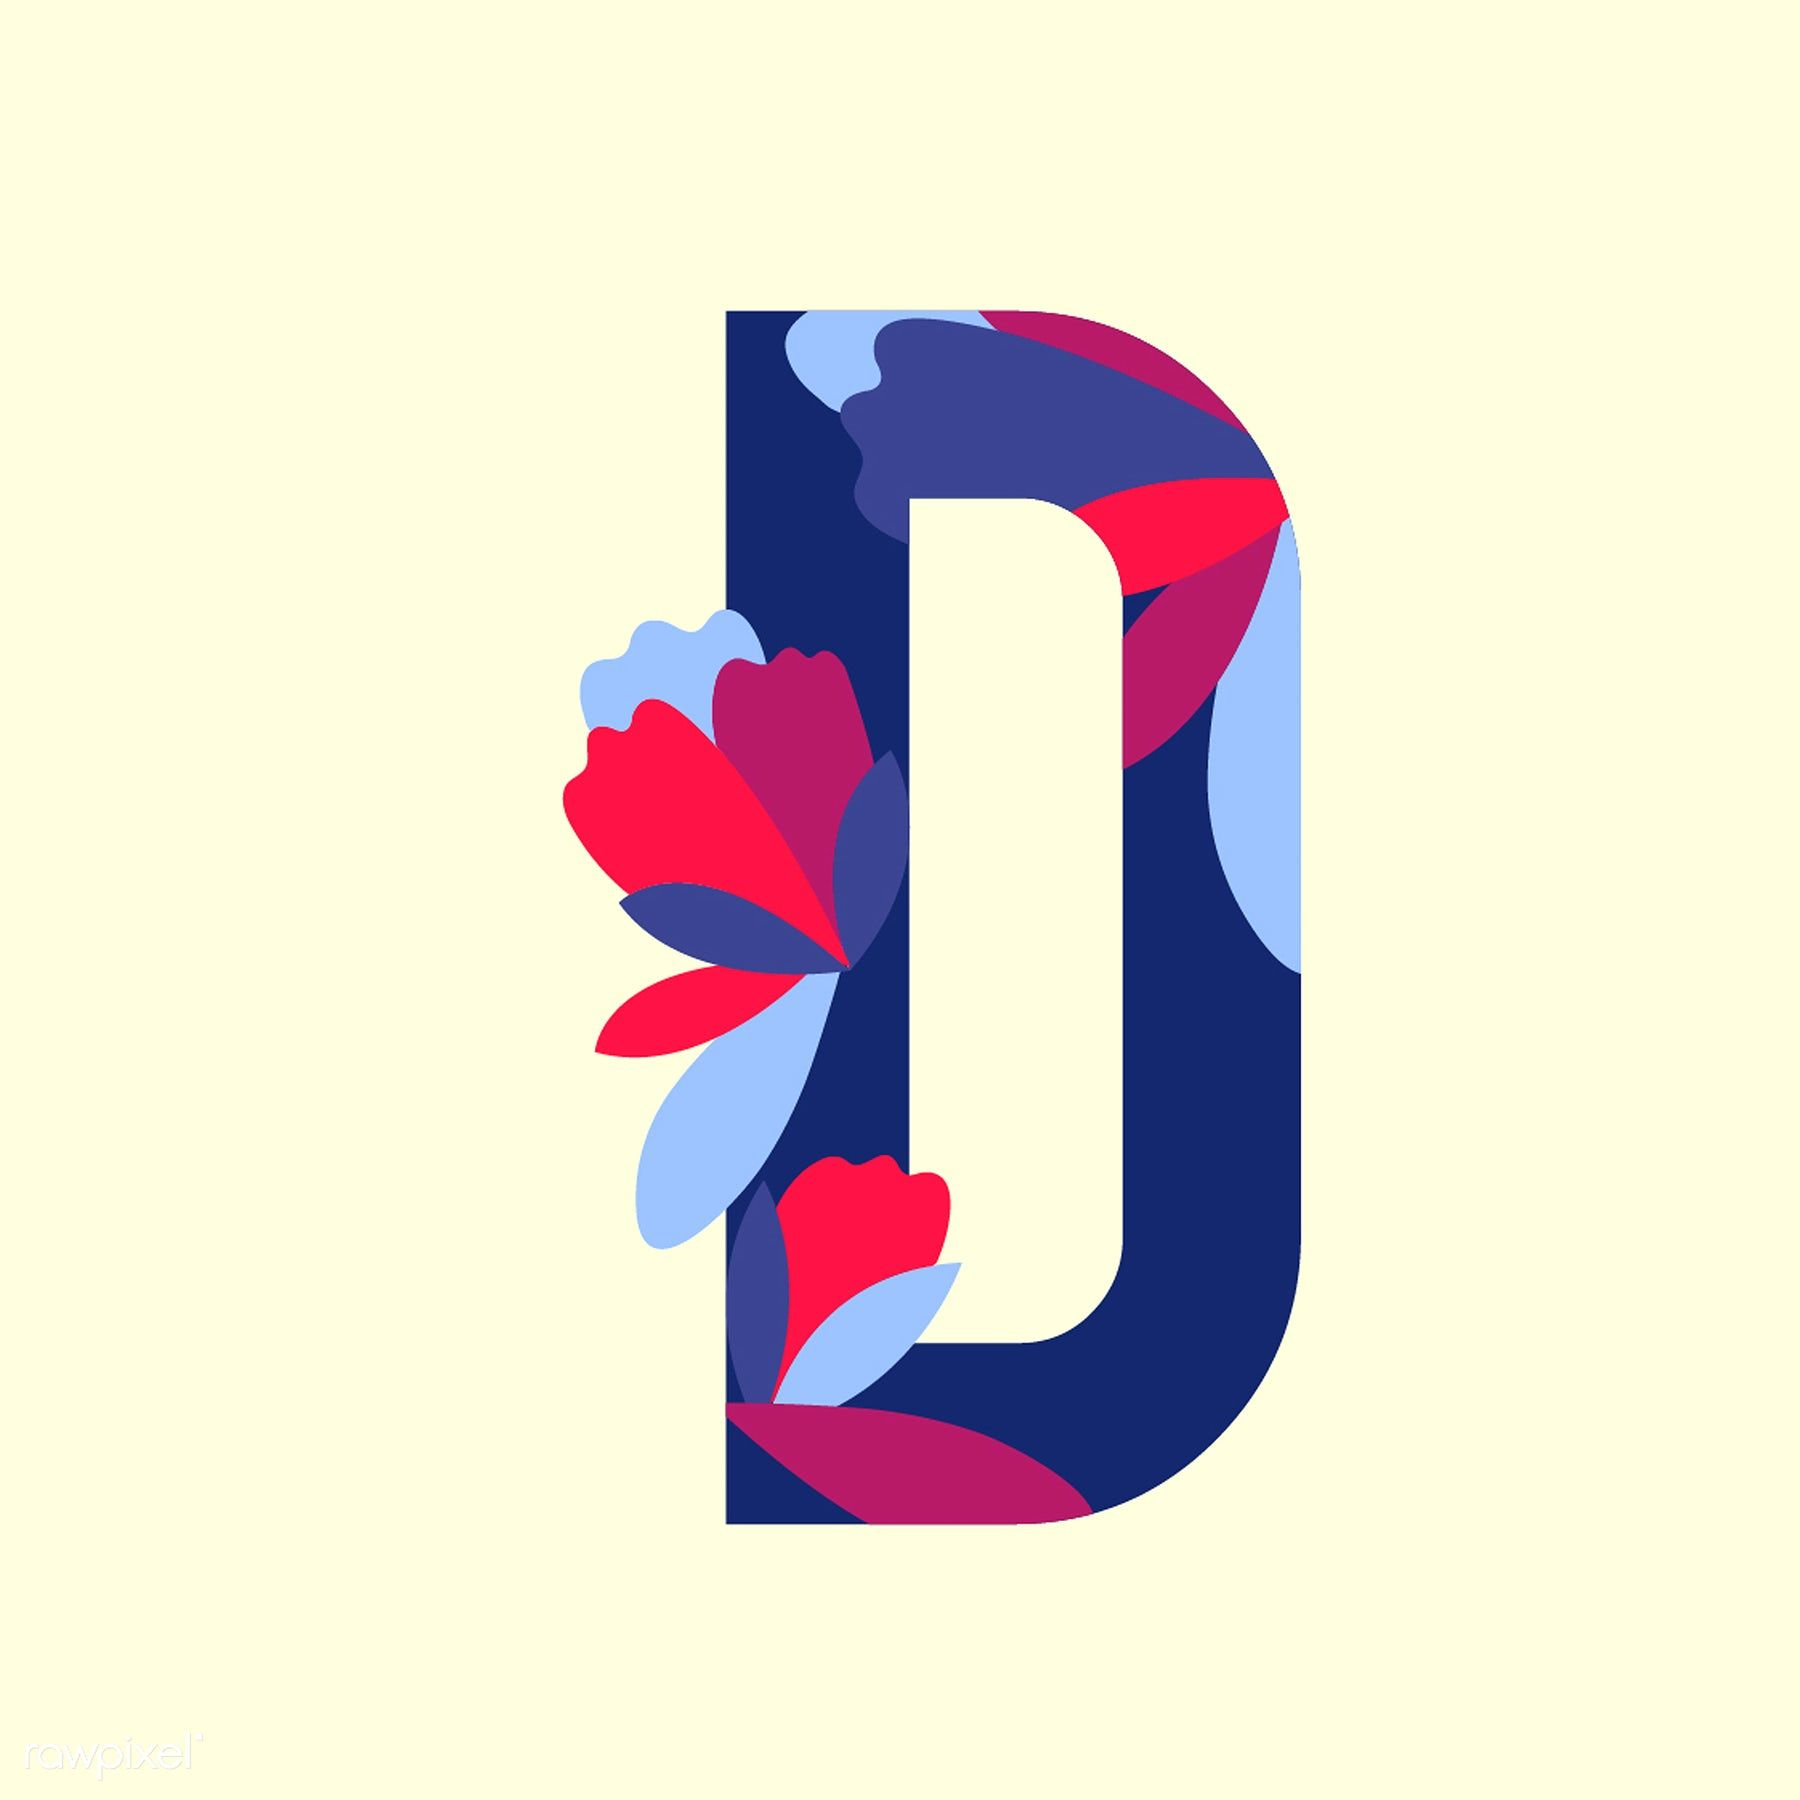 Floral Patterned Letters Vector Letter Vector Retro Vector Illustration Vector Free